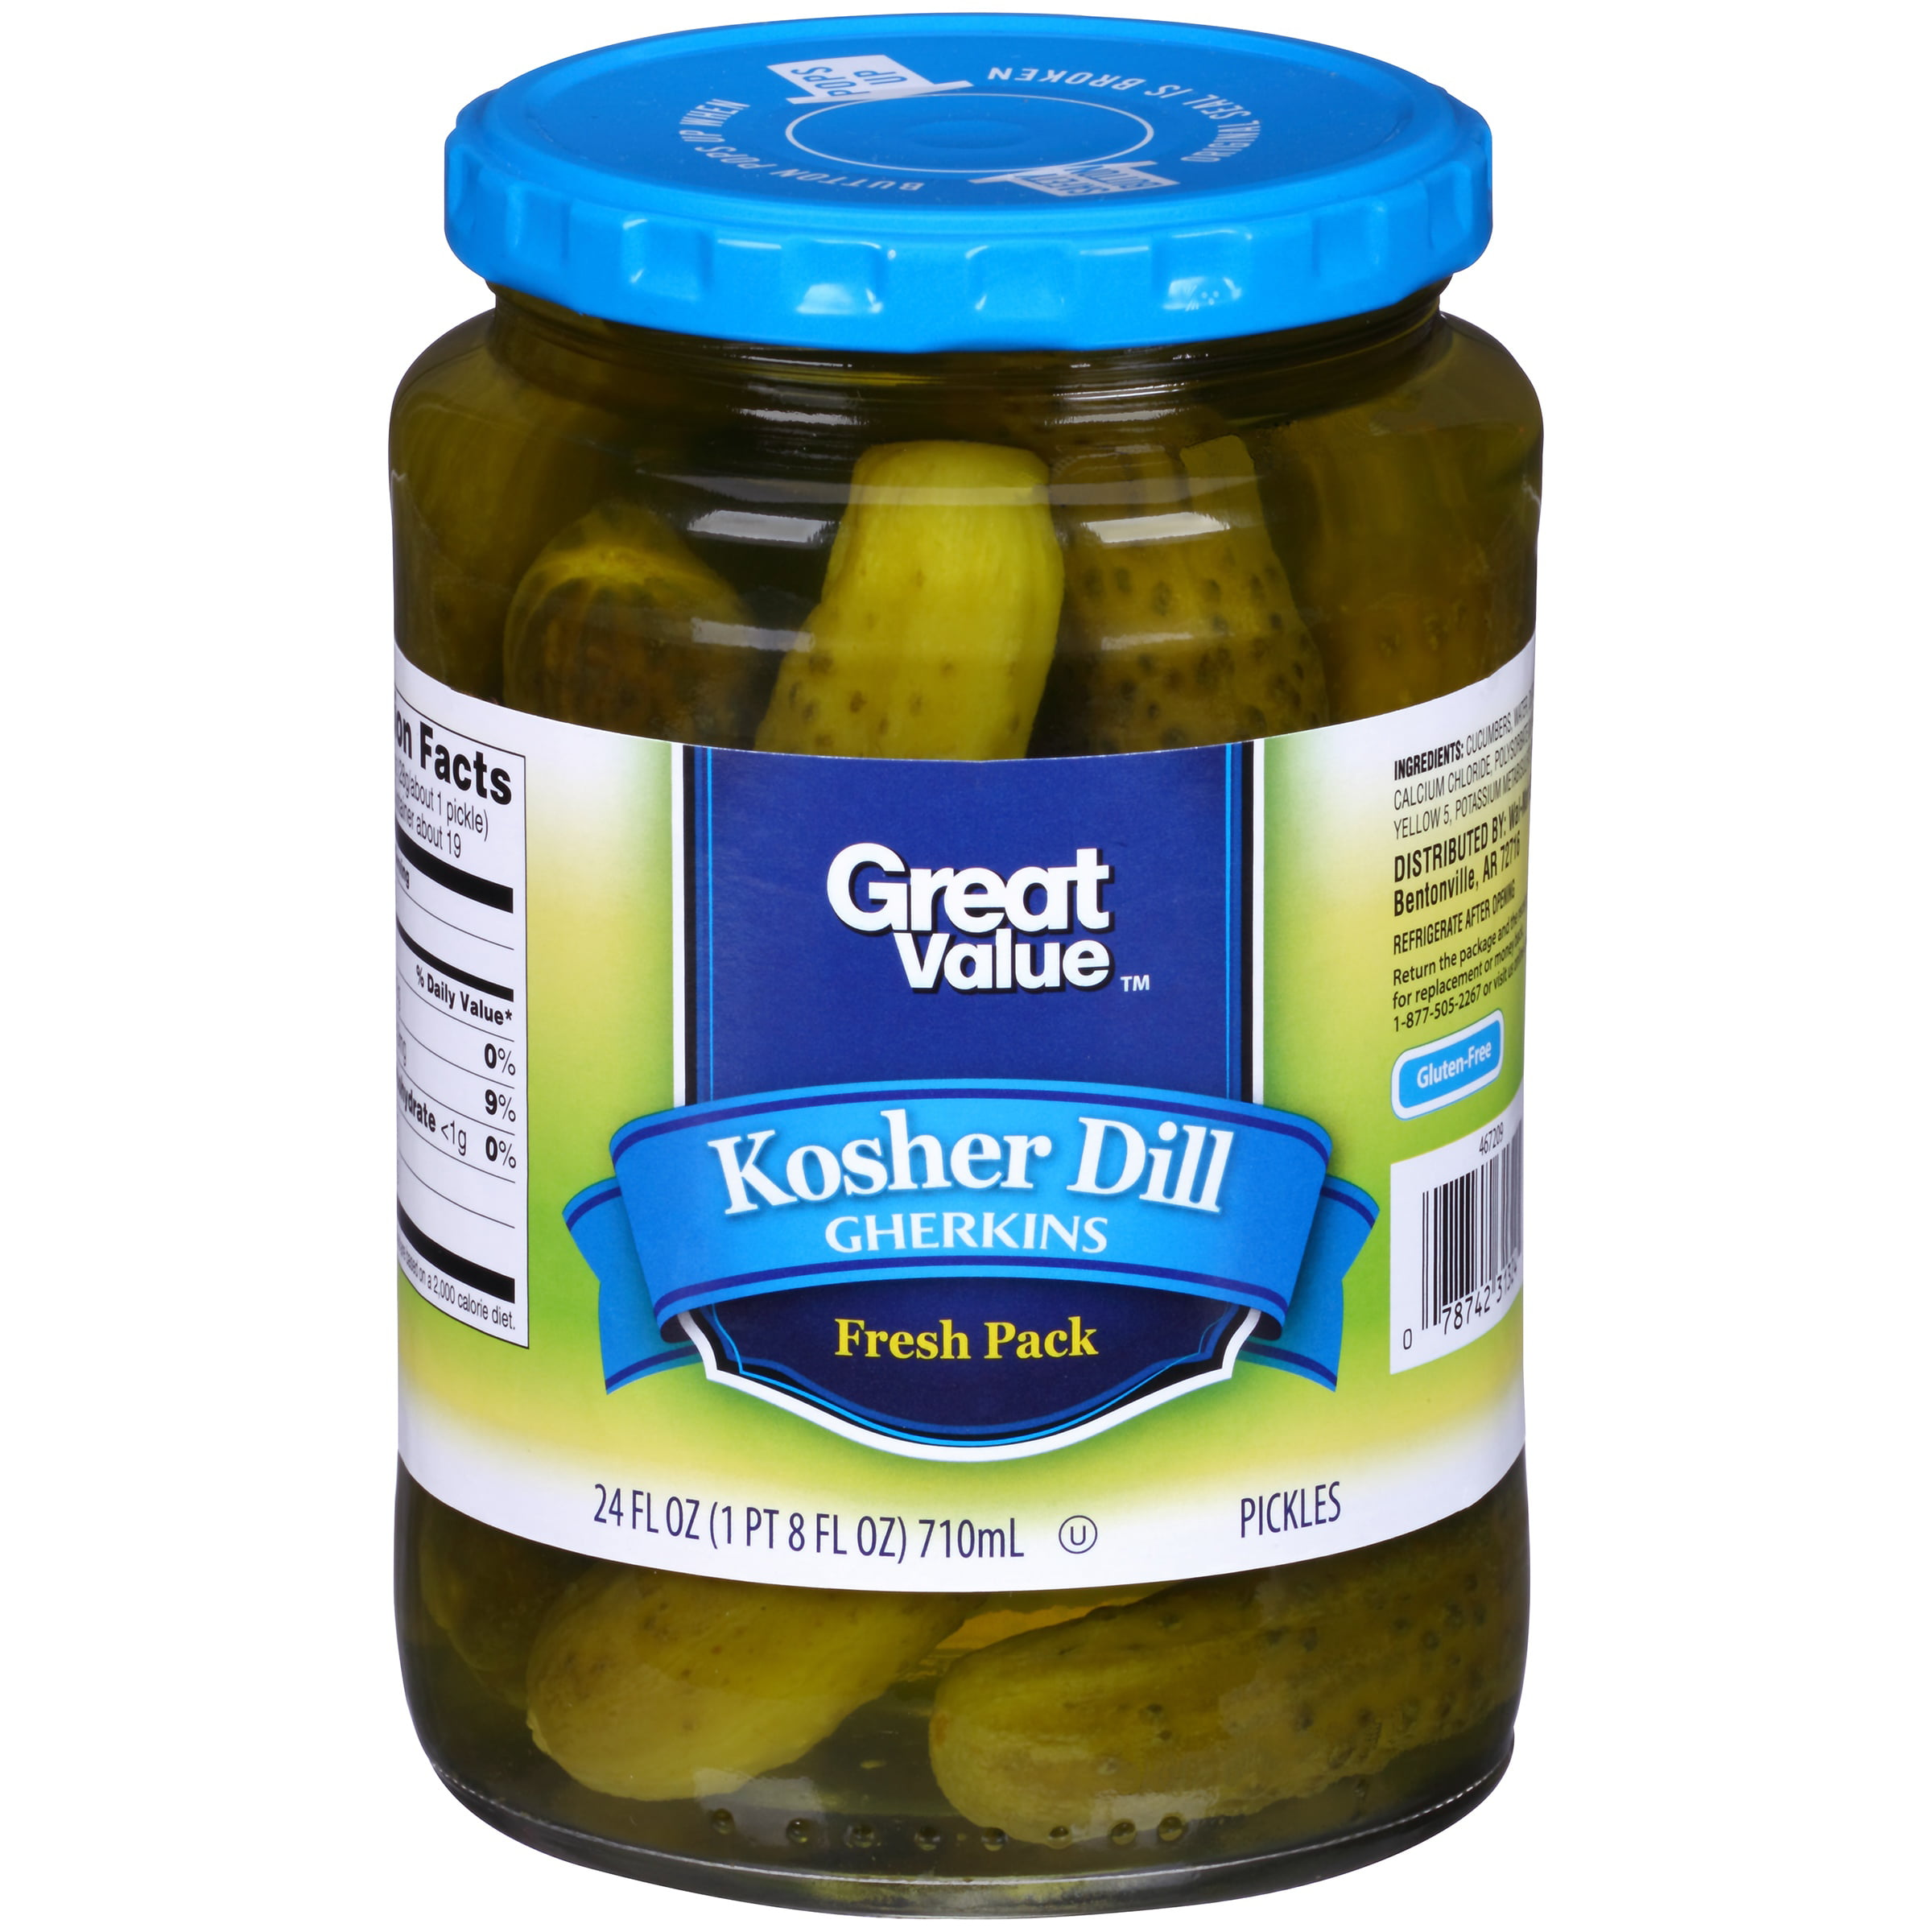 Great Value Baby Dill Pickles, 24 oz by Wal-Mart Stores, Inc.